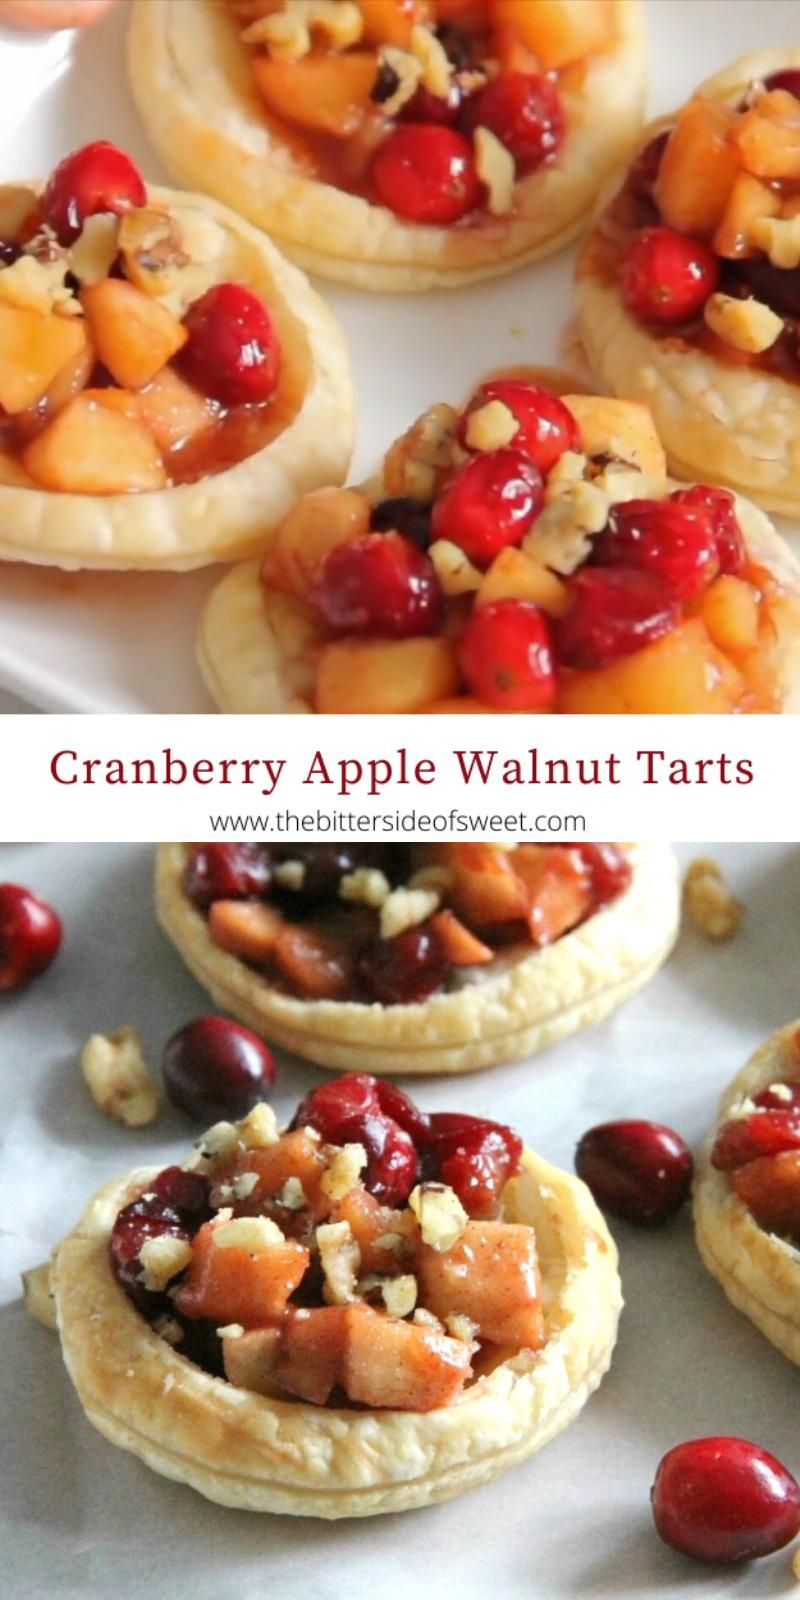 Cranberry Apple Walnut Tarts -   23 thanksgiving recipes videos appetizers desserts ideas